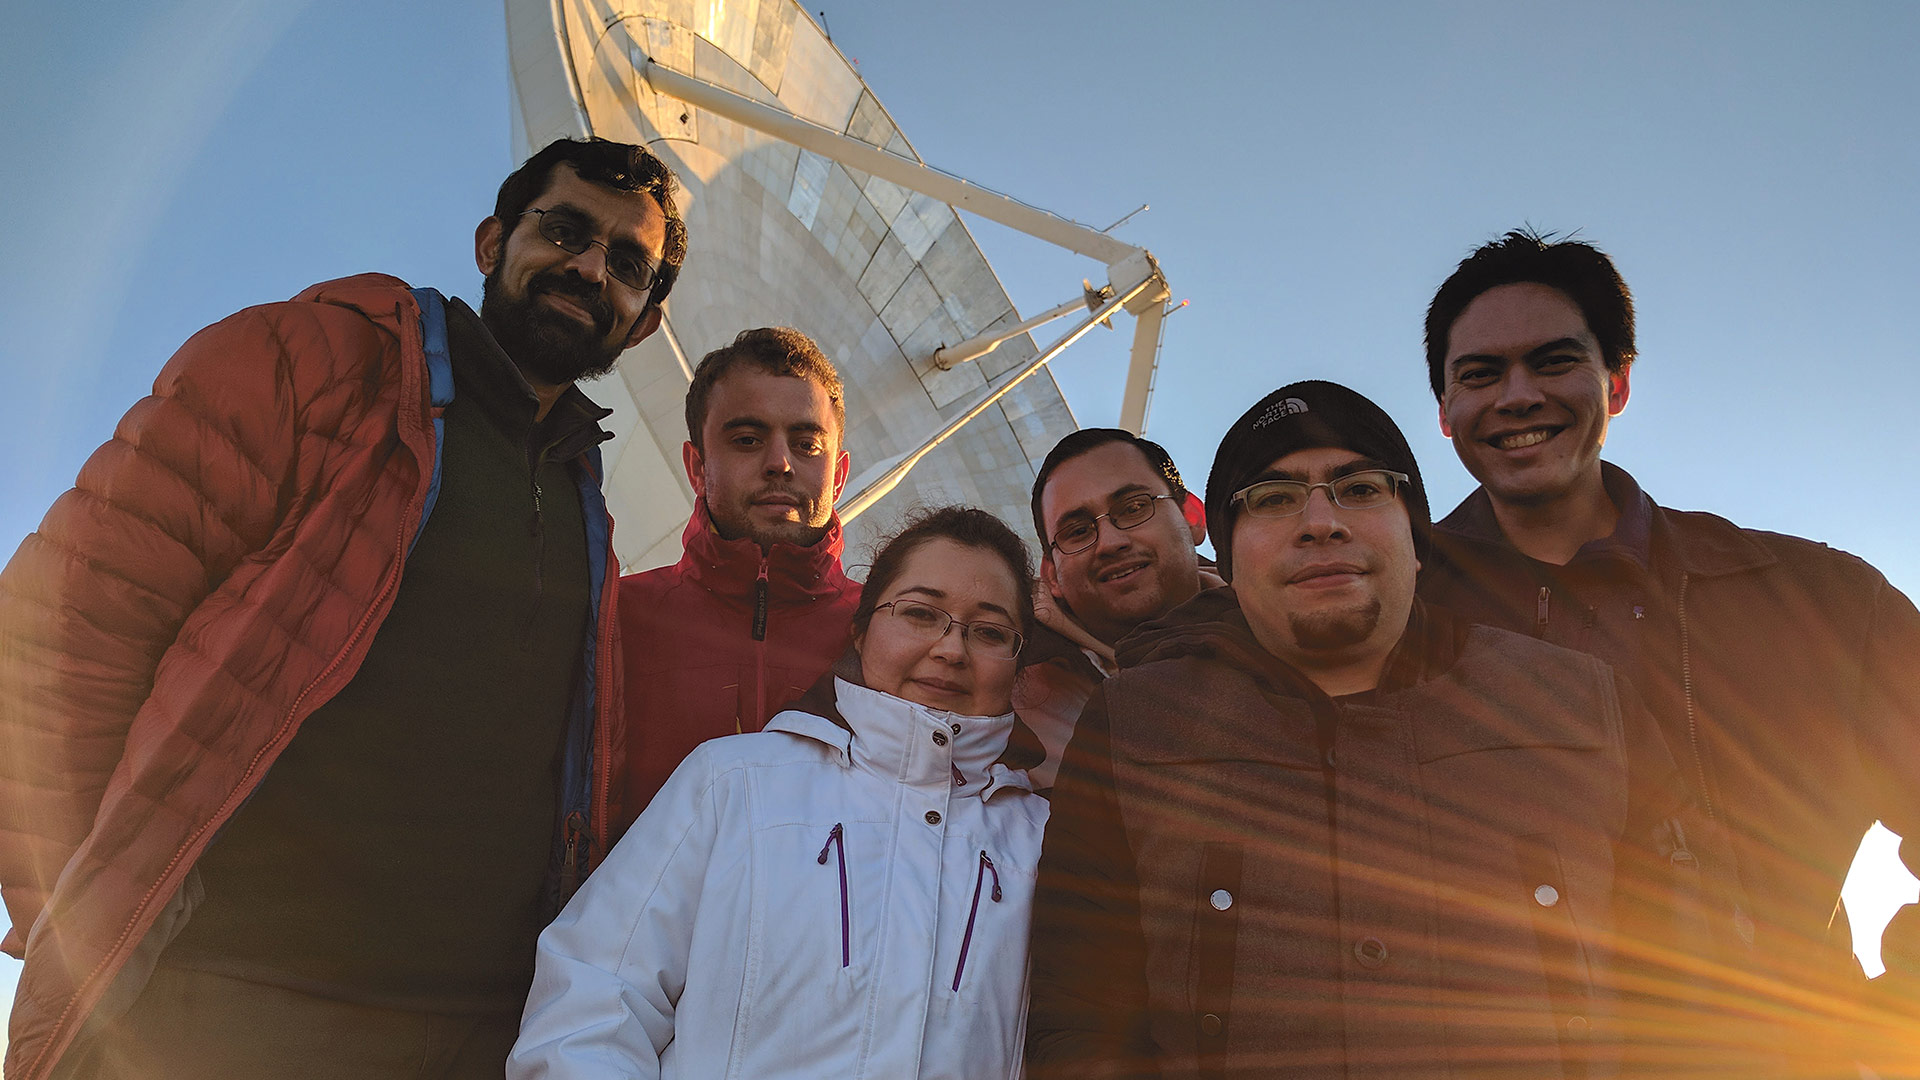 Part of the team in front of the LMT. From left, Gopal Narayanan, Aleks Popstefanija, Sandra Bustamante, Antonio Hernandez (Crya, Morelia, Mexico), David Sanchez, and Lindy Blackburn.